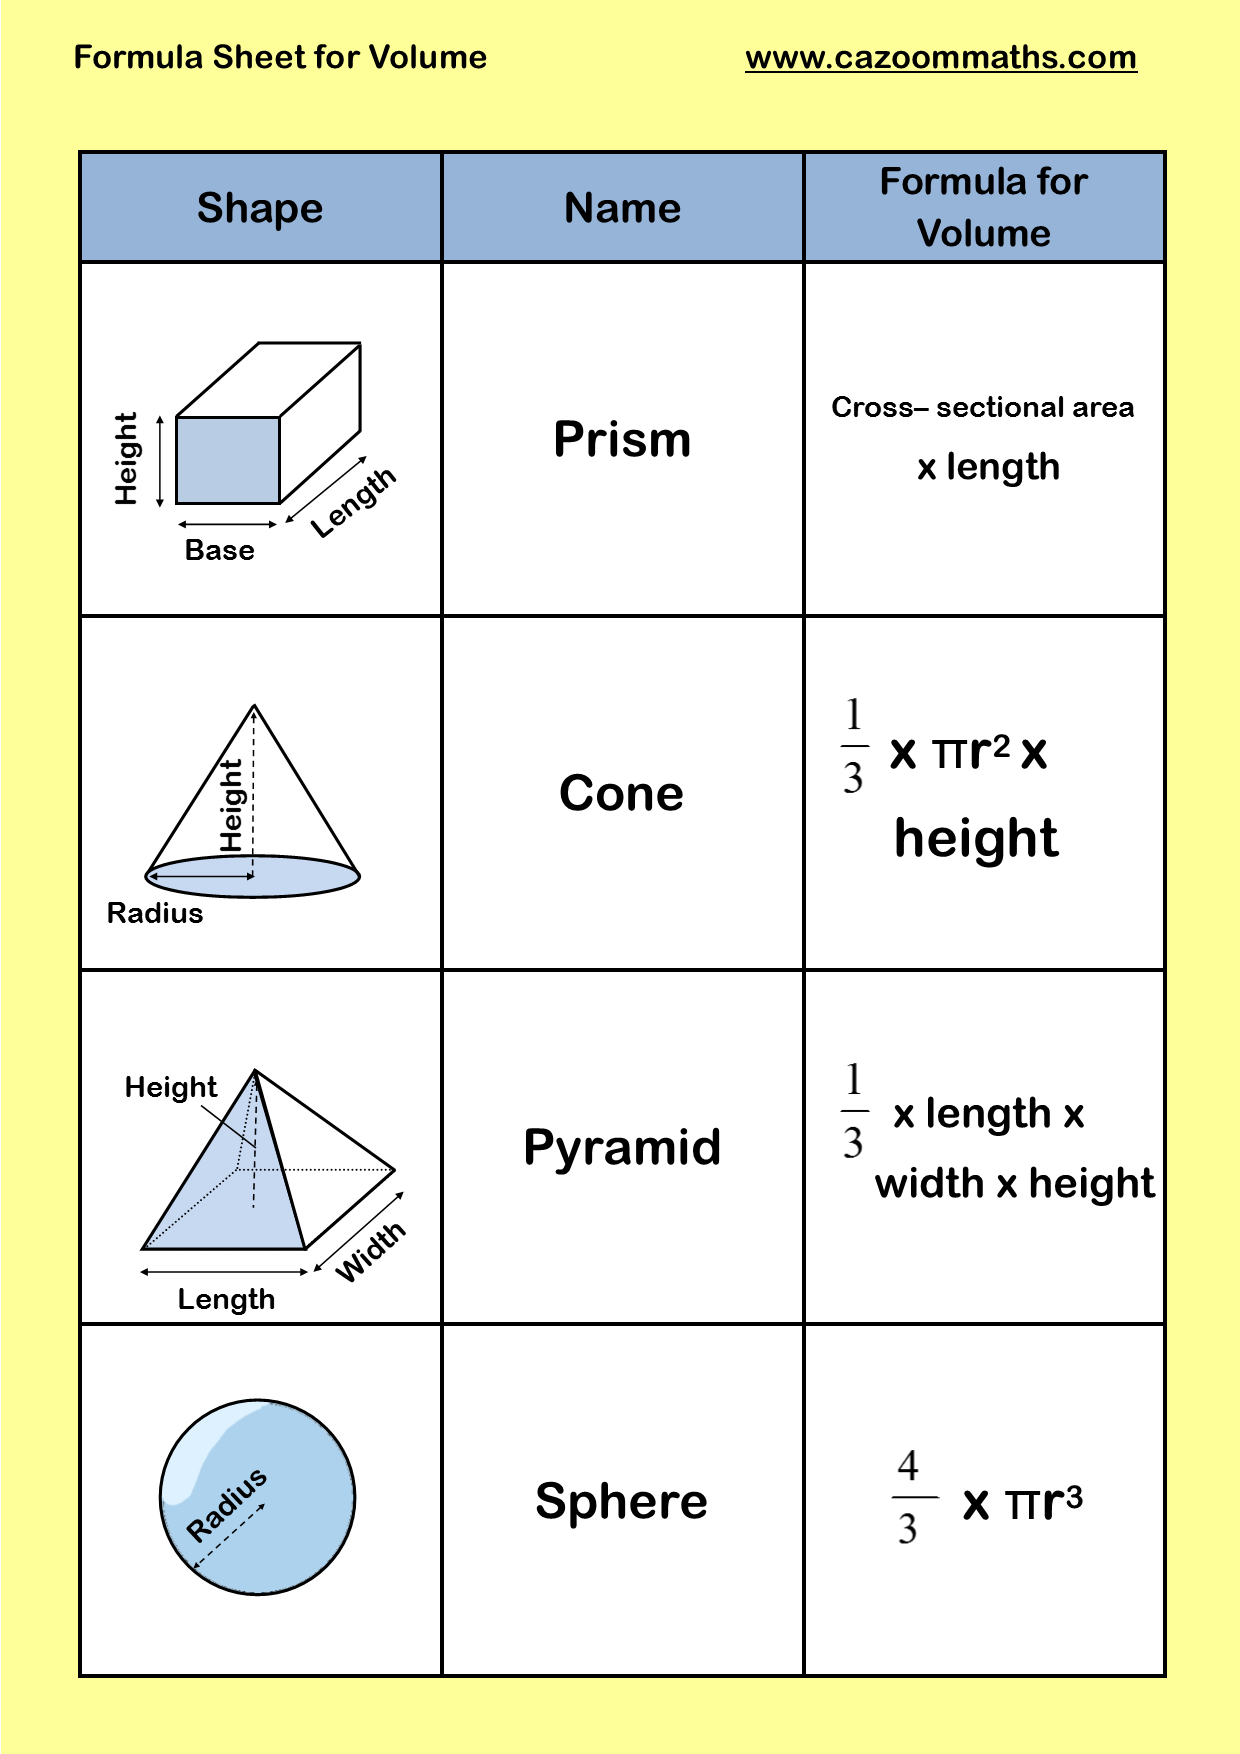 formula sheet for volume homework help geometry printable and maths worksheets that are fun and effective for kids